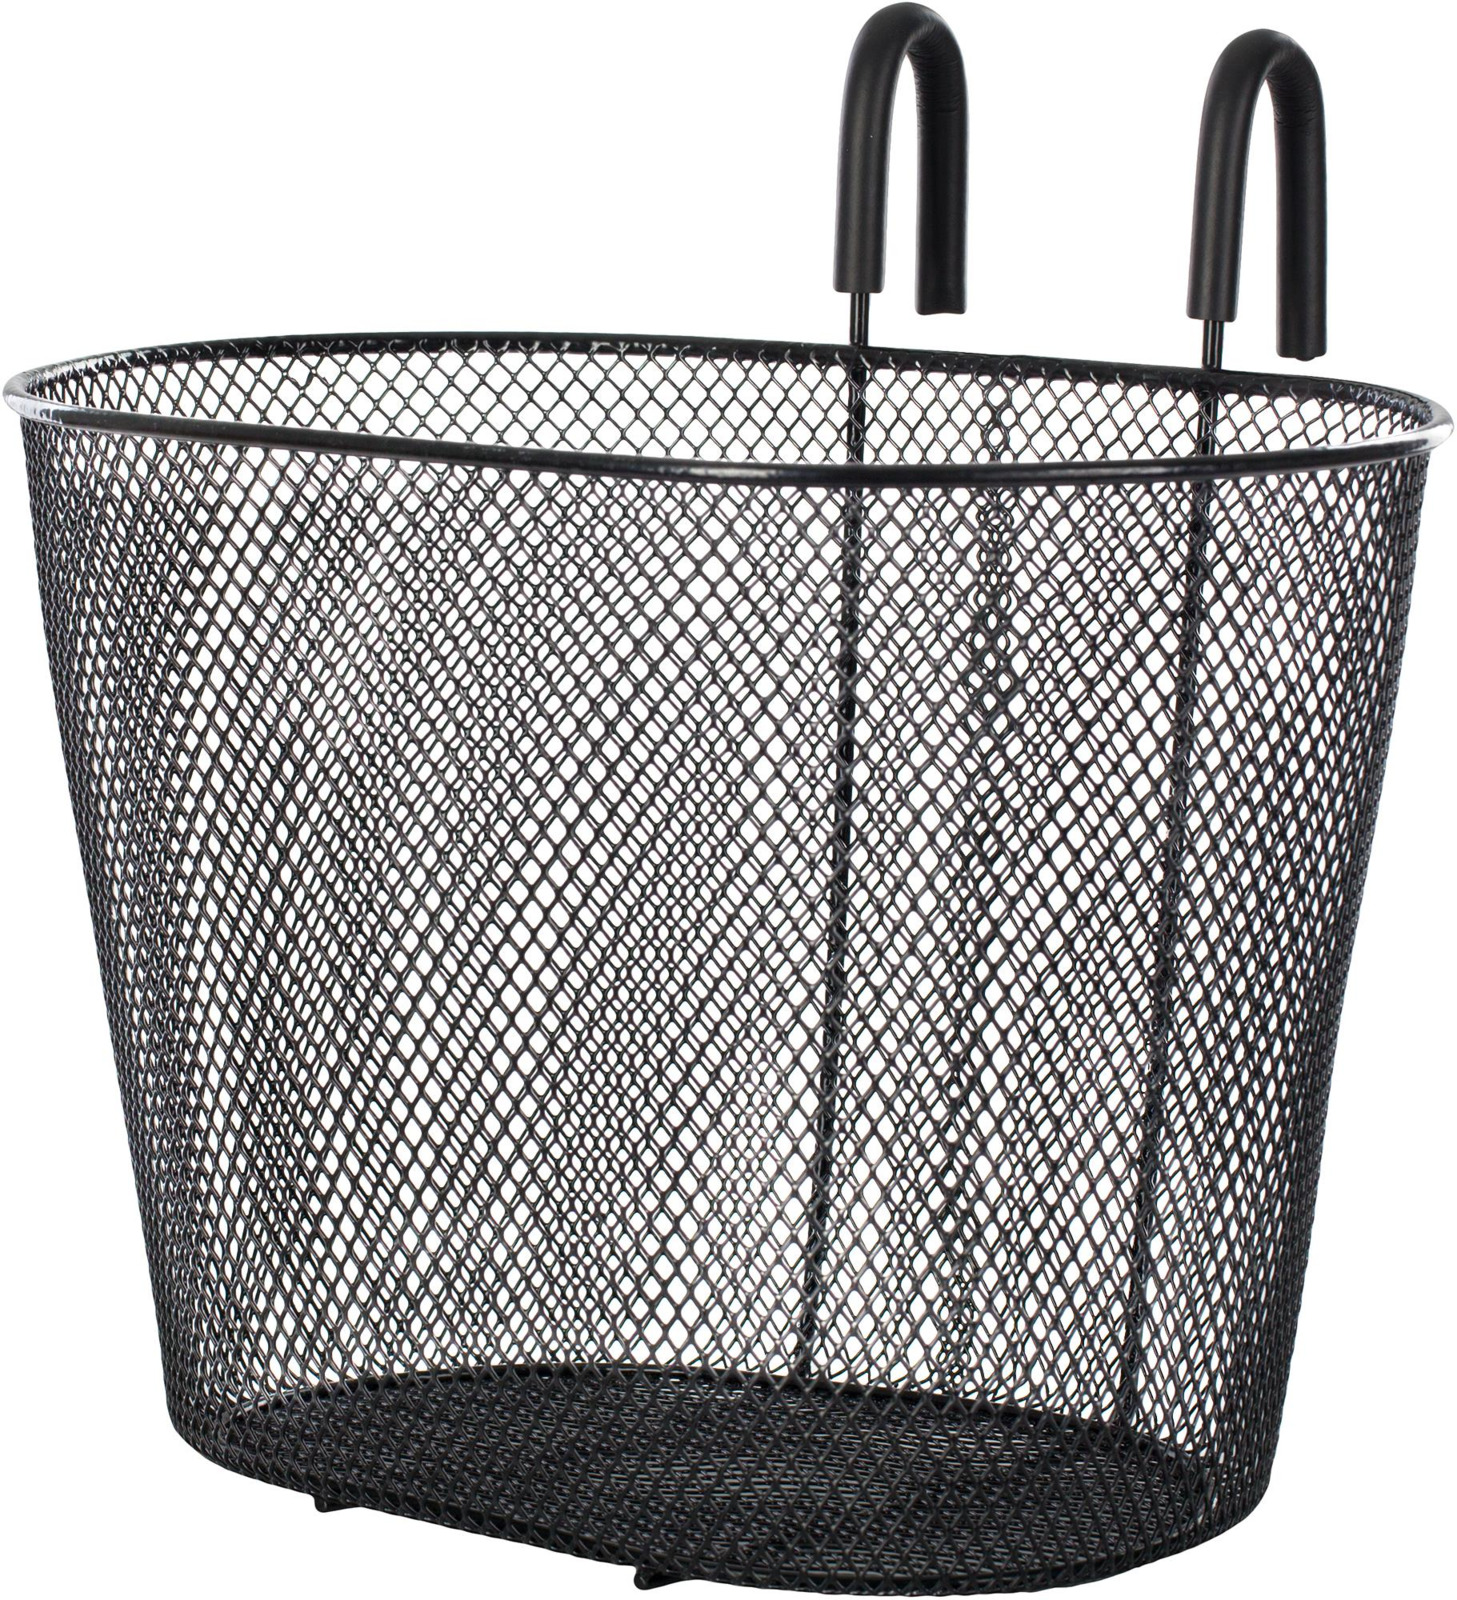 Корзина на велосипед Stern CB-3 cheap basket Bicycle basket, черный велосипед stern kidster transformer 12 2017